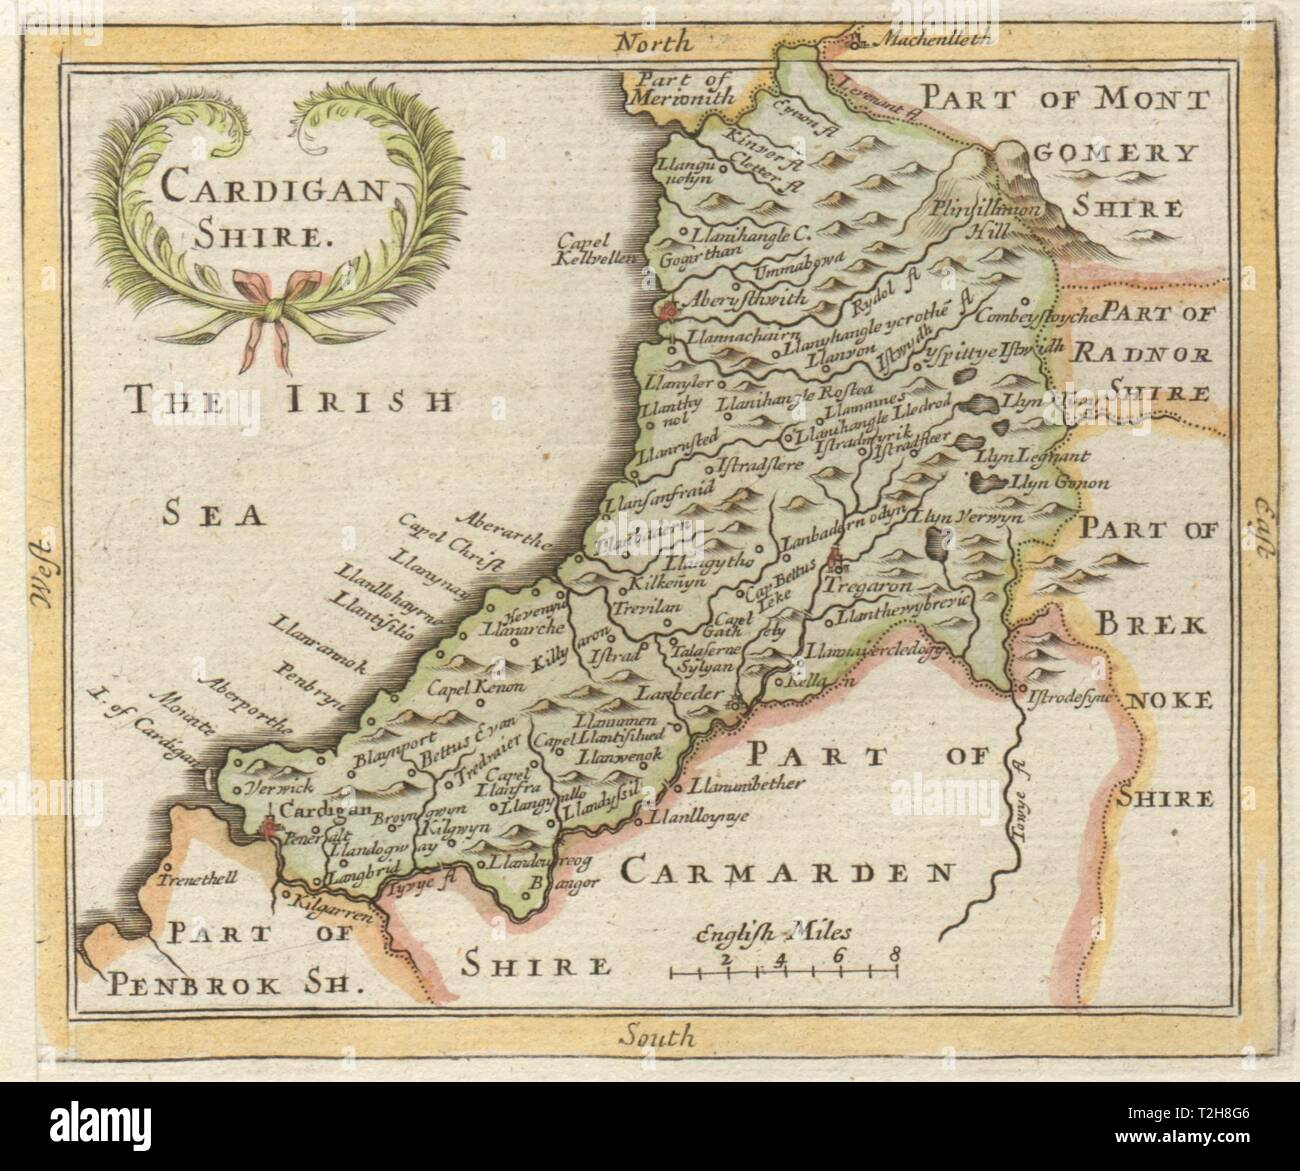 Antique county map of Cardiganshire by Francis Grose / John Seller 1783 - Stock Image